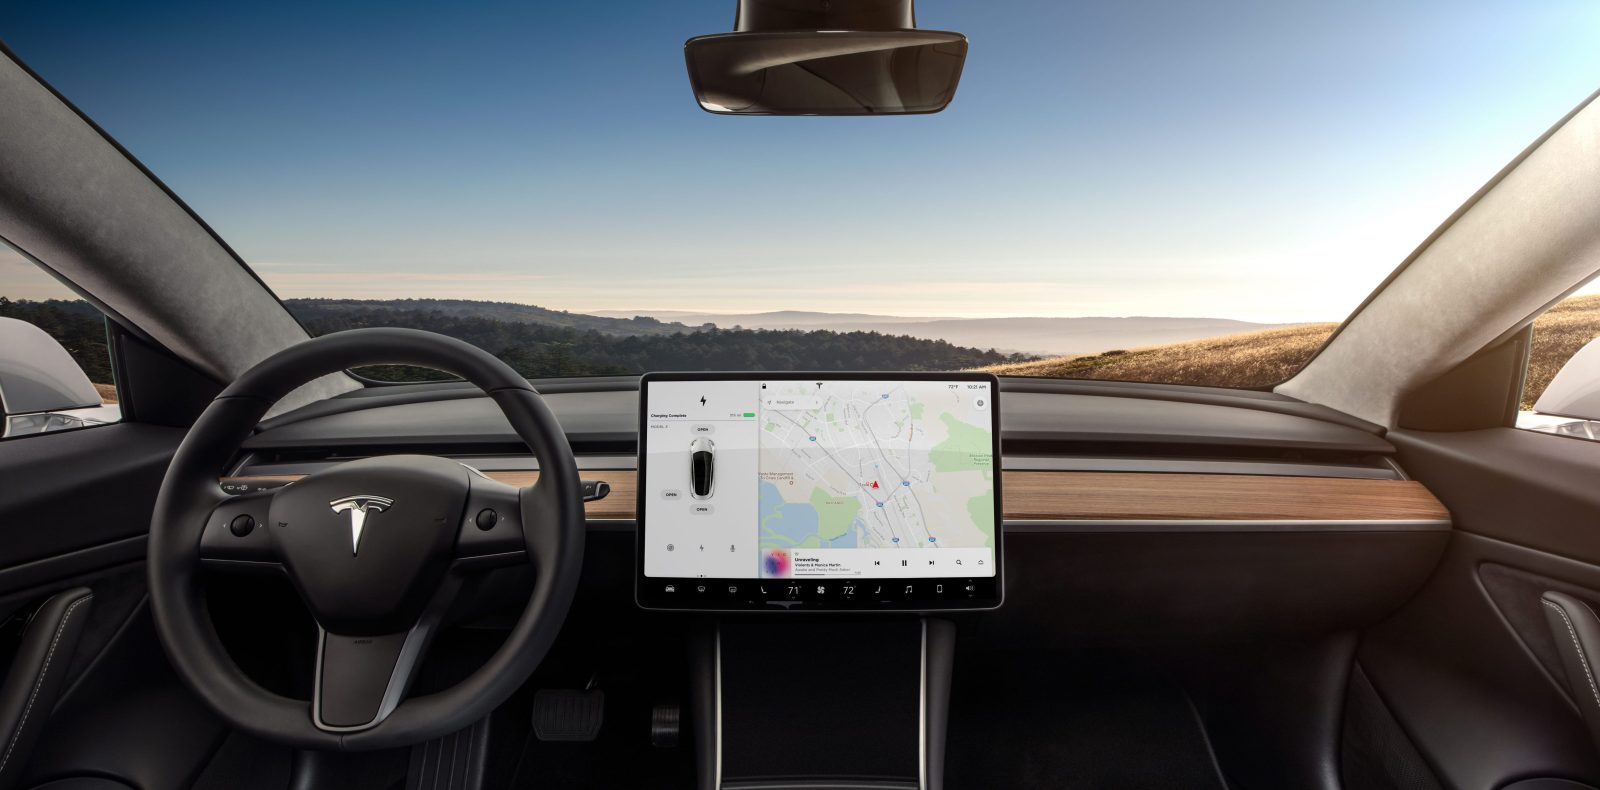 Tesla is planning to add video streaming feature to center